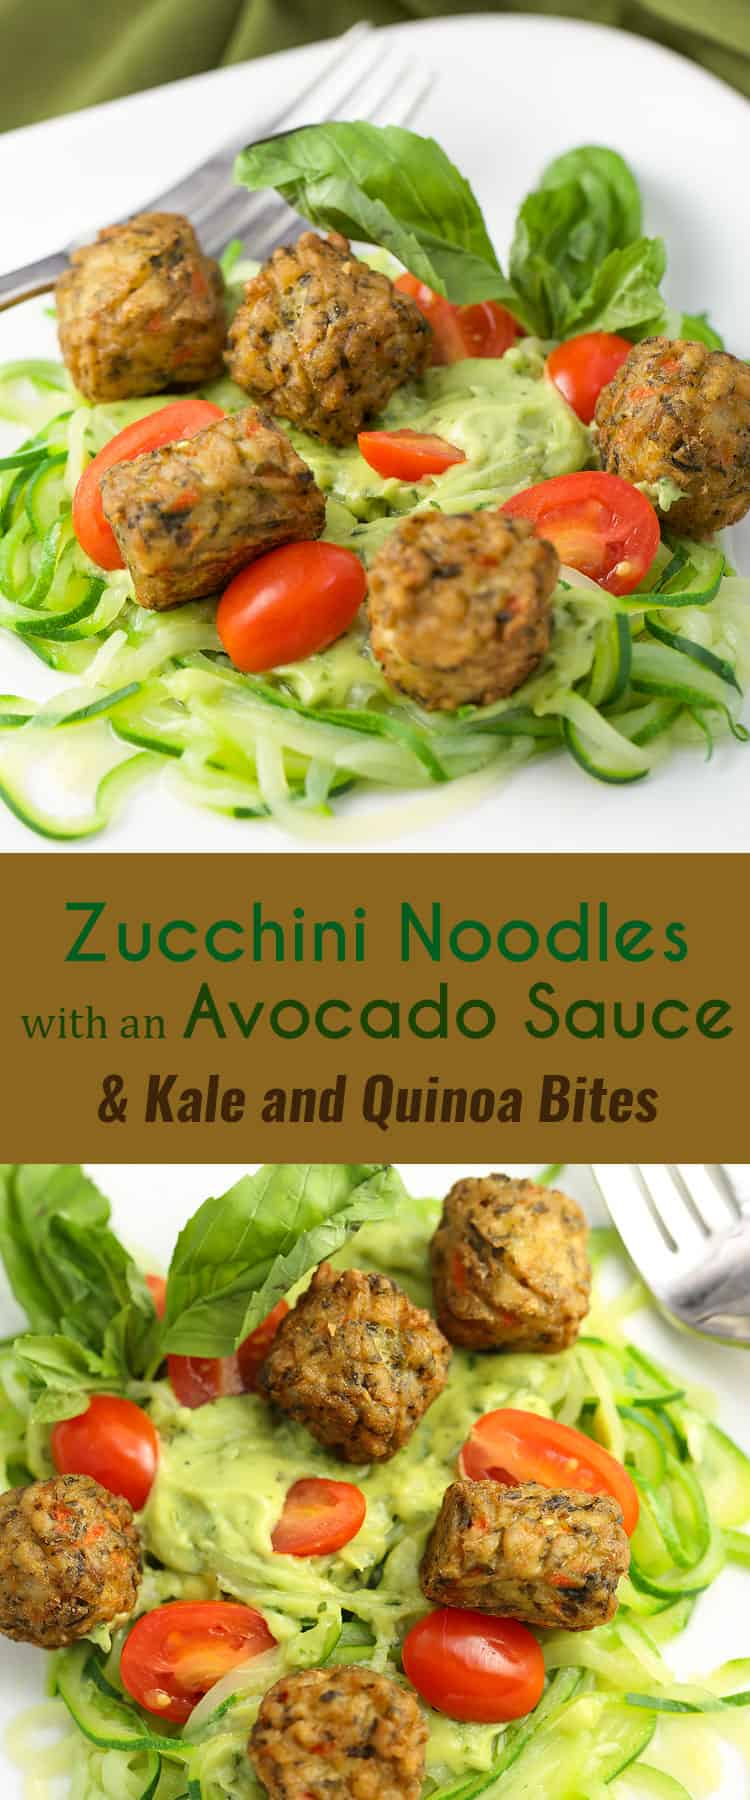 Zucchini Noodles with an Avocado Sauce and Kale and Quinoa Bites